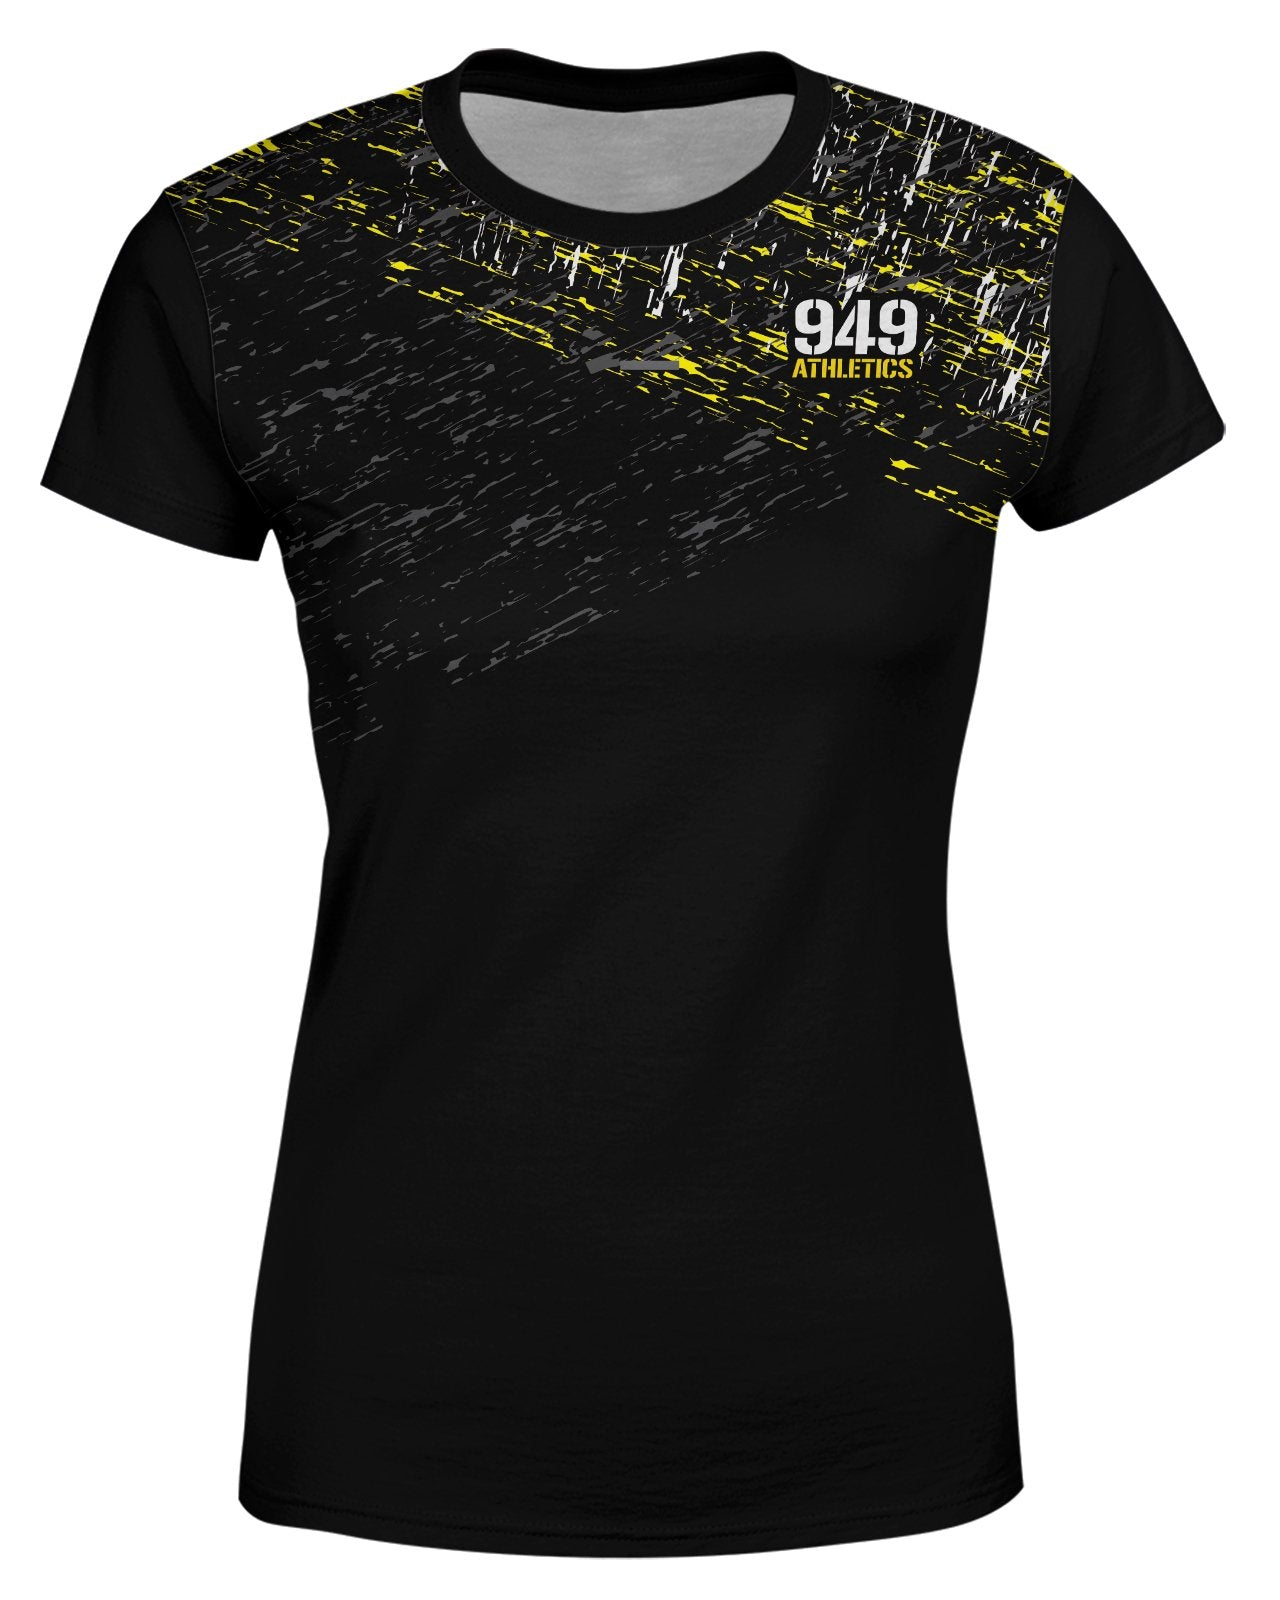 949 Athletics - Splatter T-Shirt (Short Sleeve) - Women's